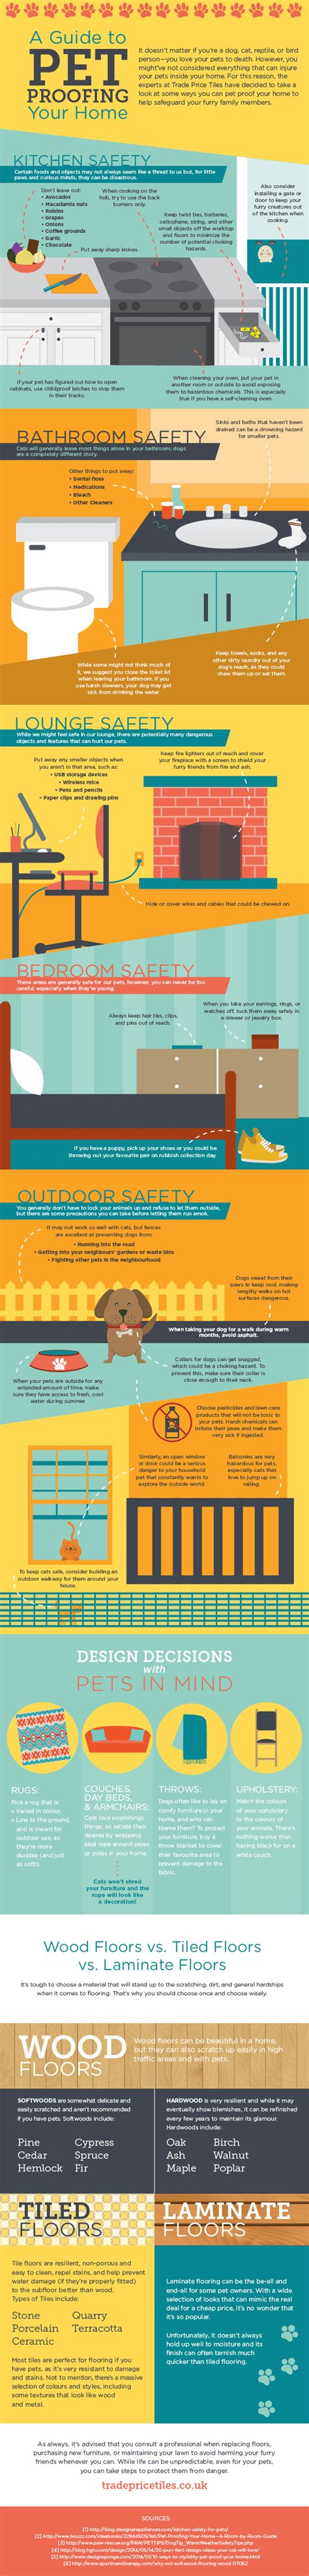 dog proofing your house a mini guide to puppy proof your house